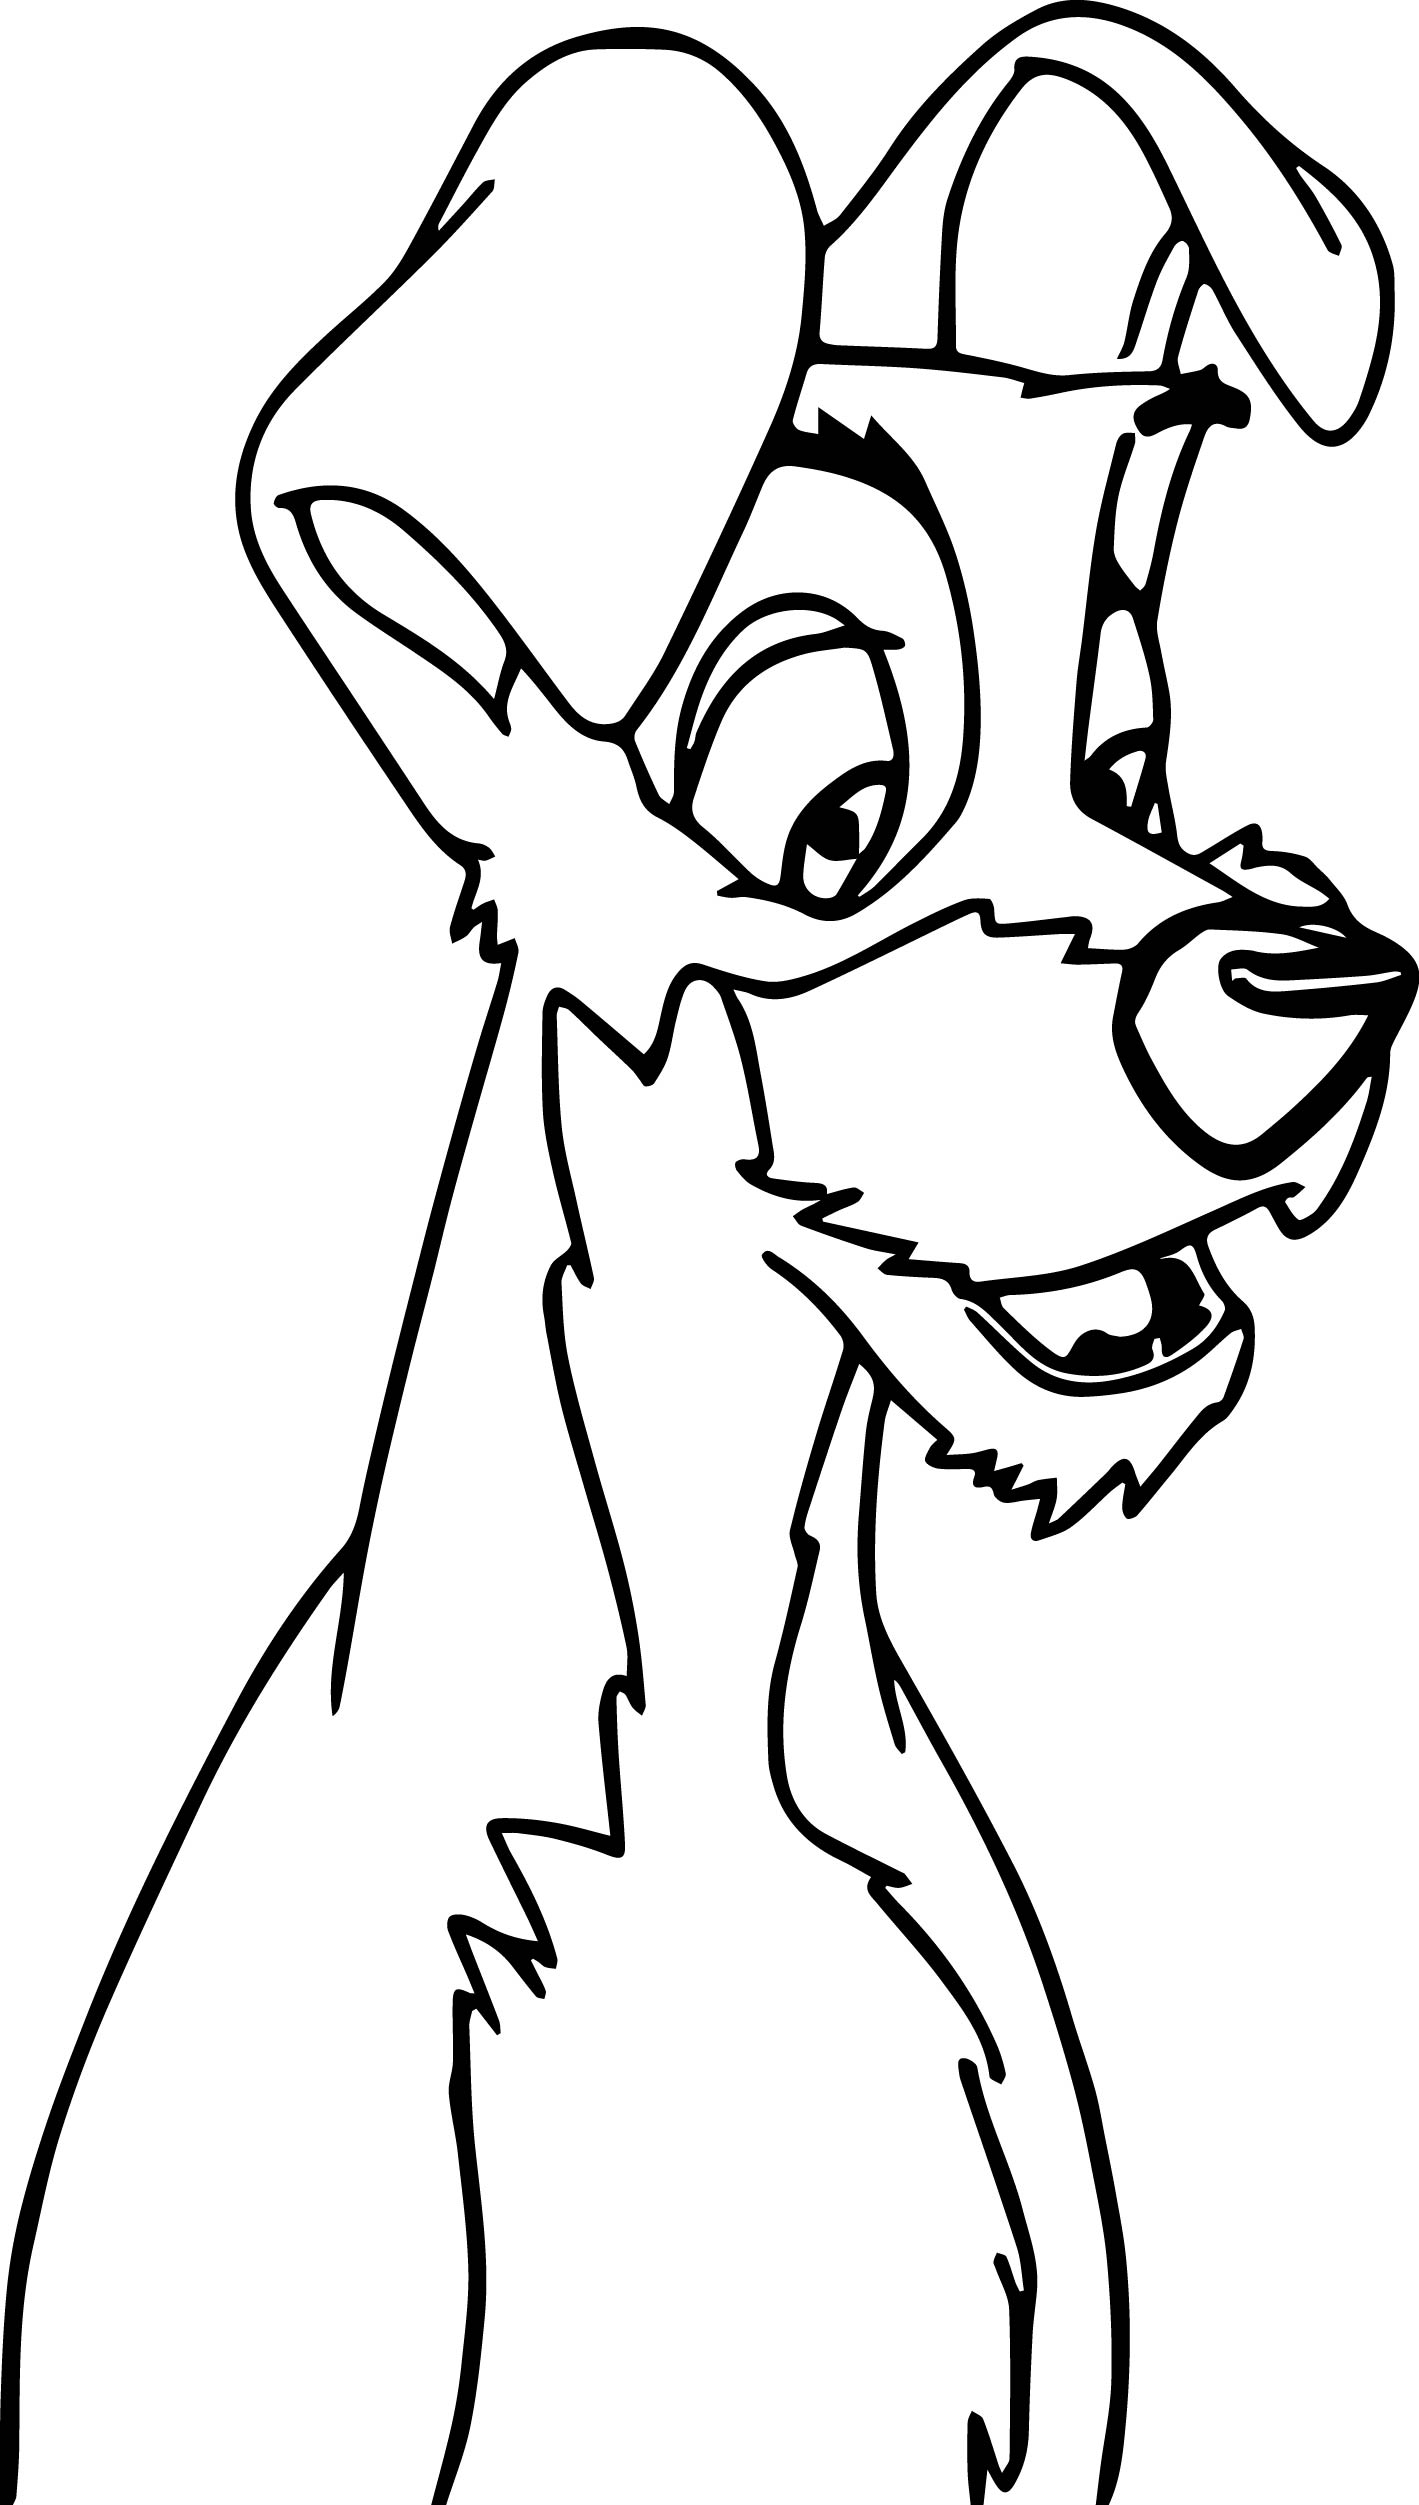 tramp dog smile coloring pages